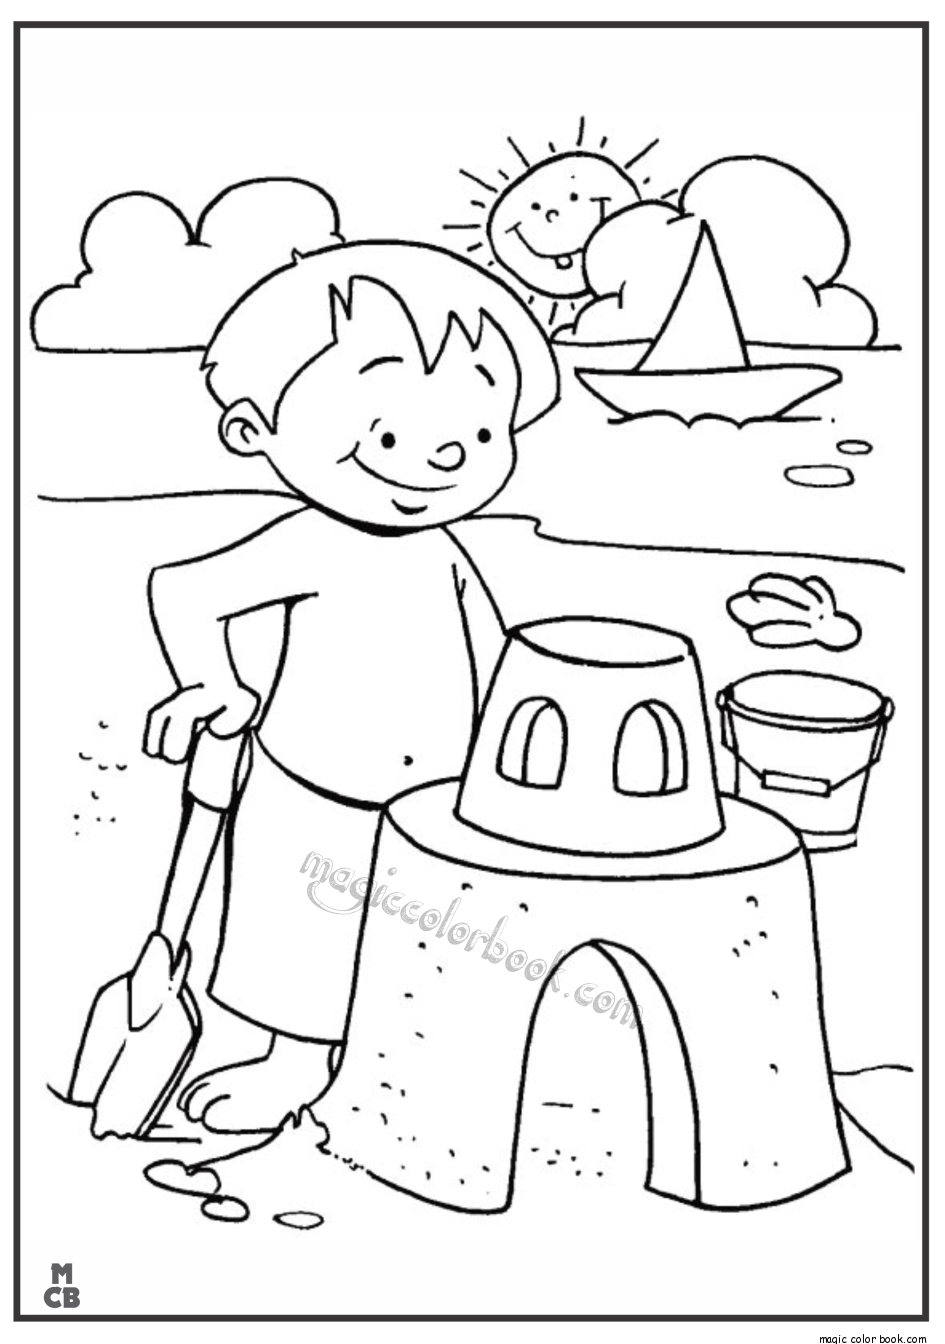 Free Summer Coloring Pages Kids Summer Coloring Pages Cool Coloring Pages Summer Coloring Sheets